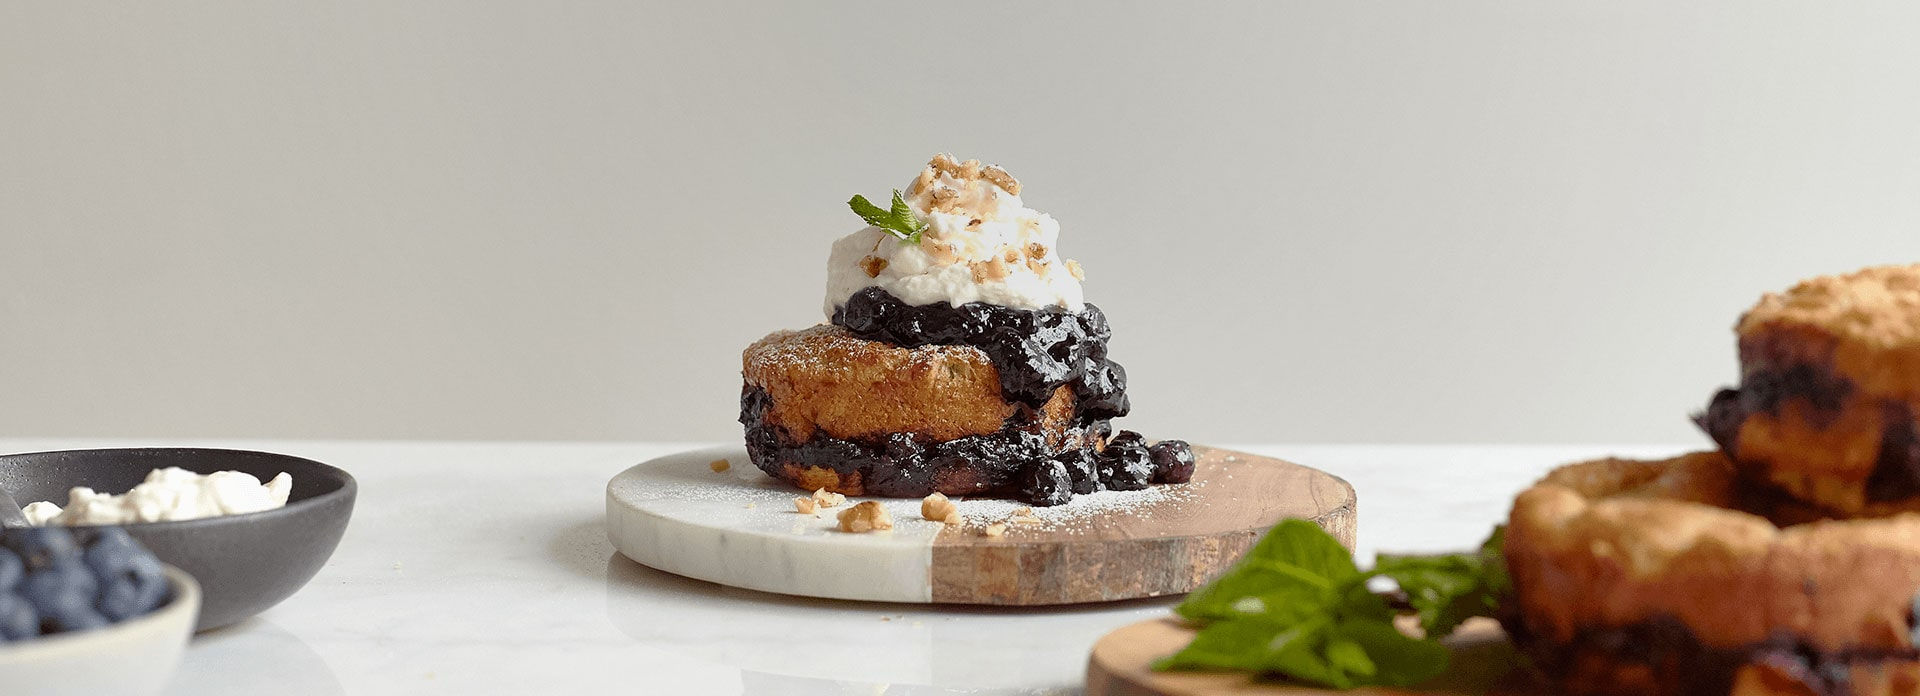 French toast cake drizzled with blueberry sauce and whipped cream on top of a wooden and marble platter.